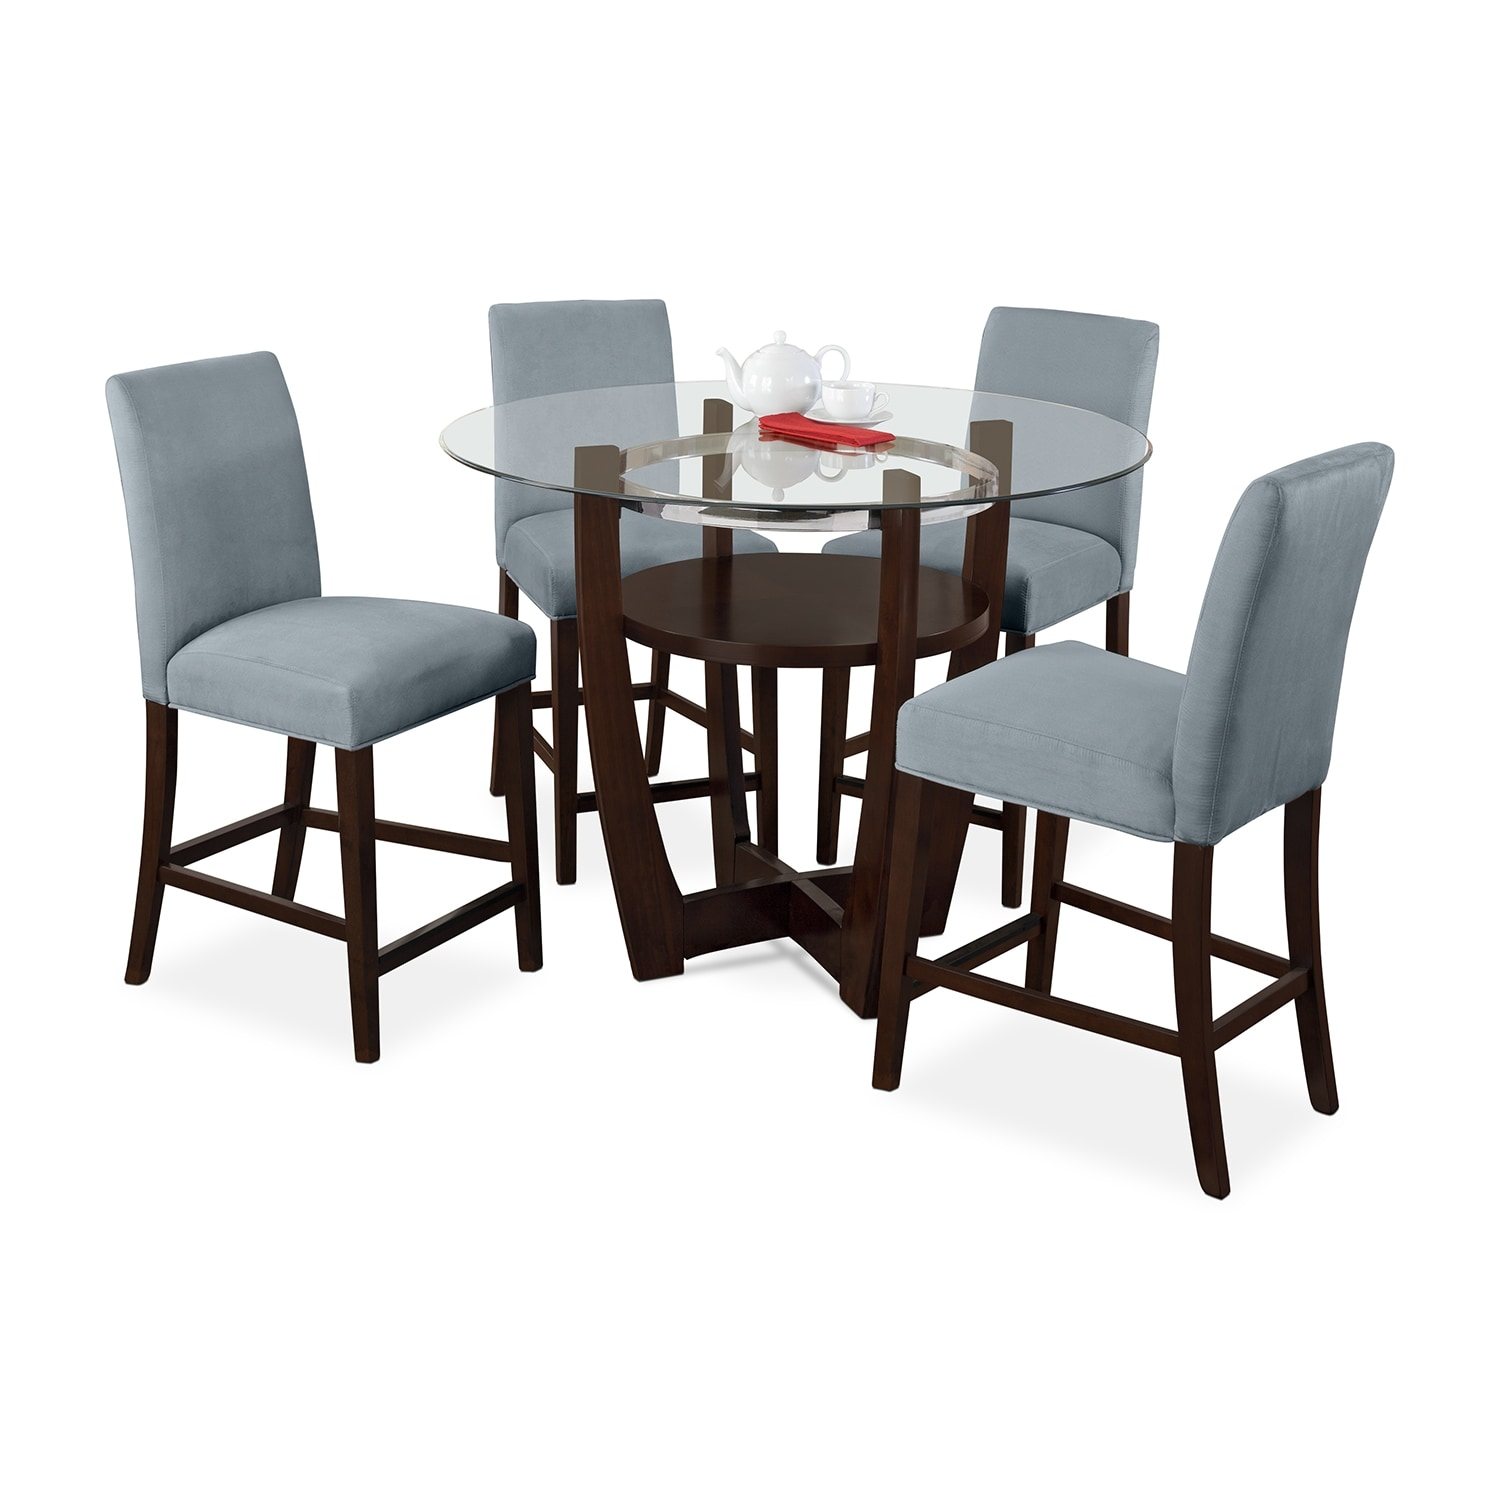 Dining Room Furniture - Alcove Counter-Height Dinette with 4 Side Chairs - Aqua